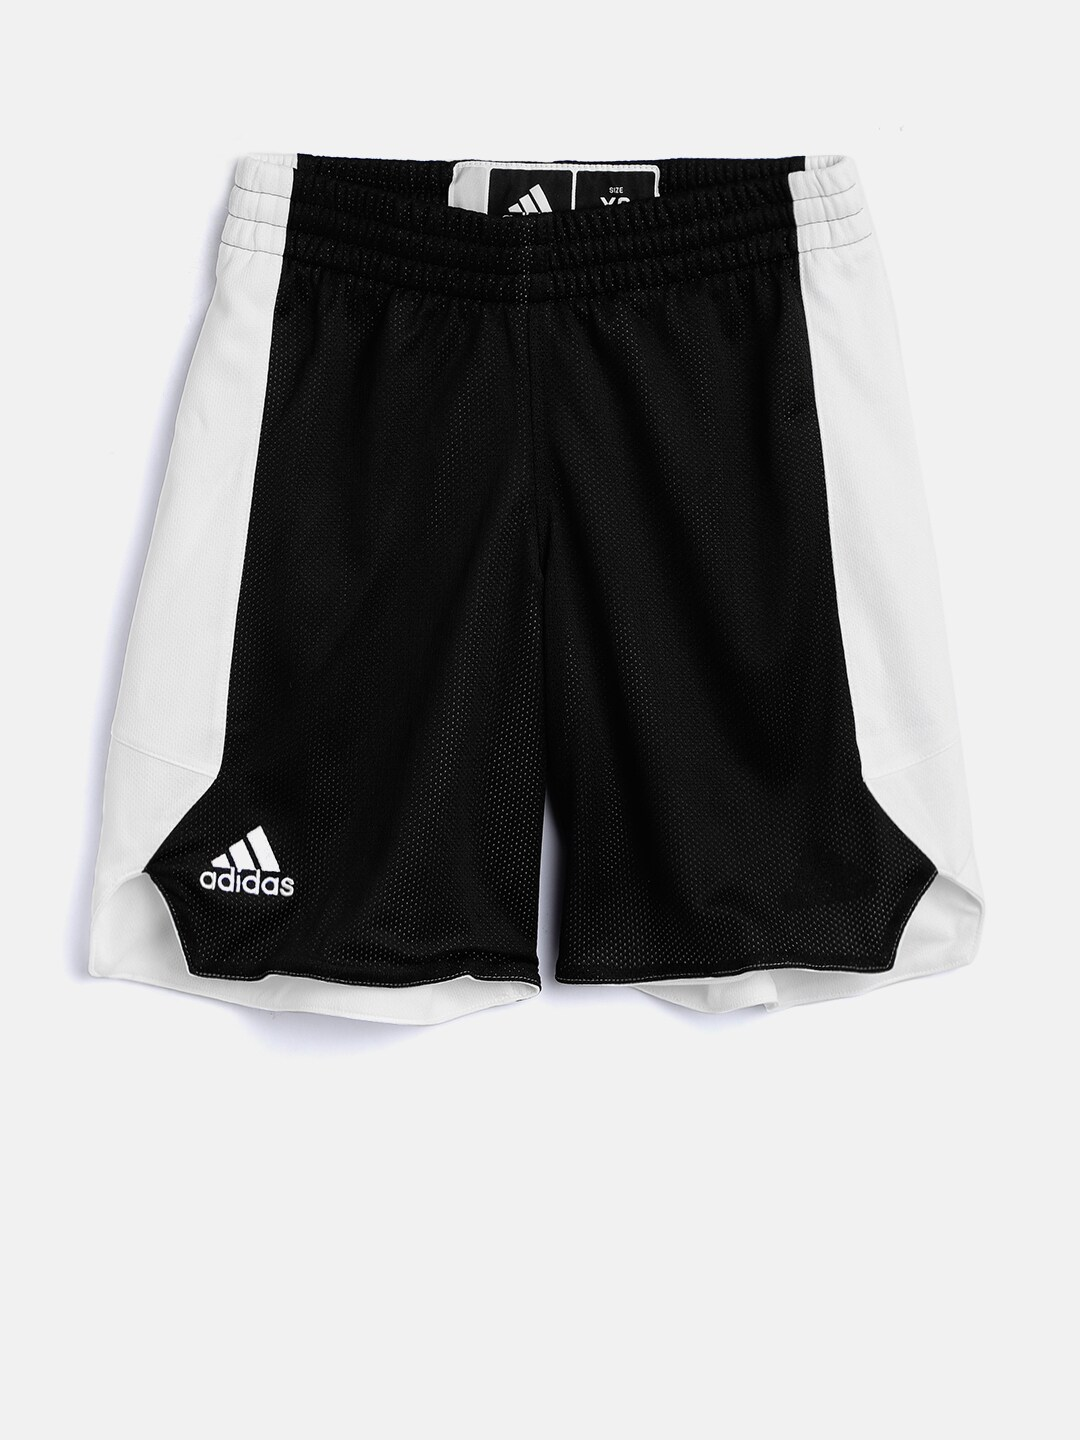 Adidas White Shorts - Buy Adidas White Shorts online in India eb2a34d7af